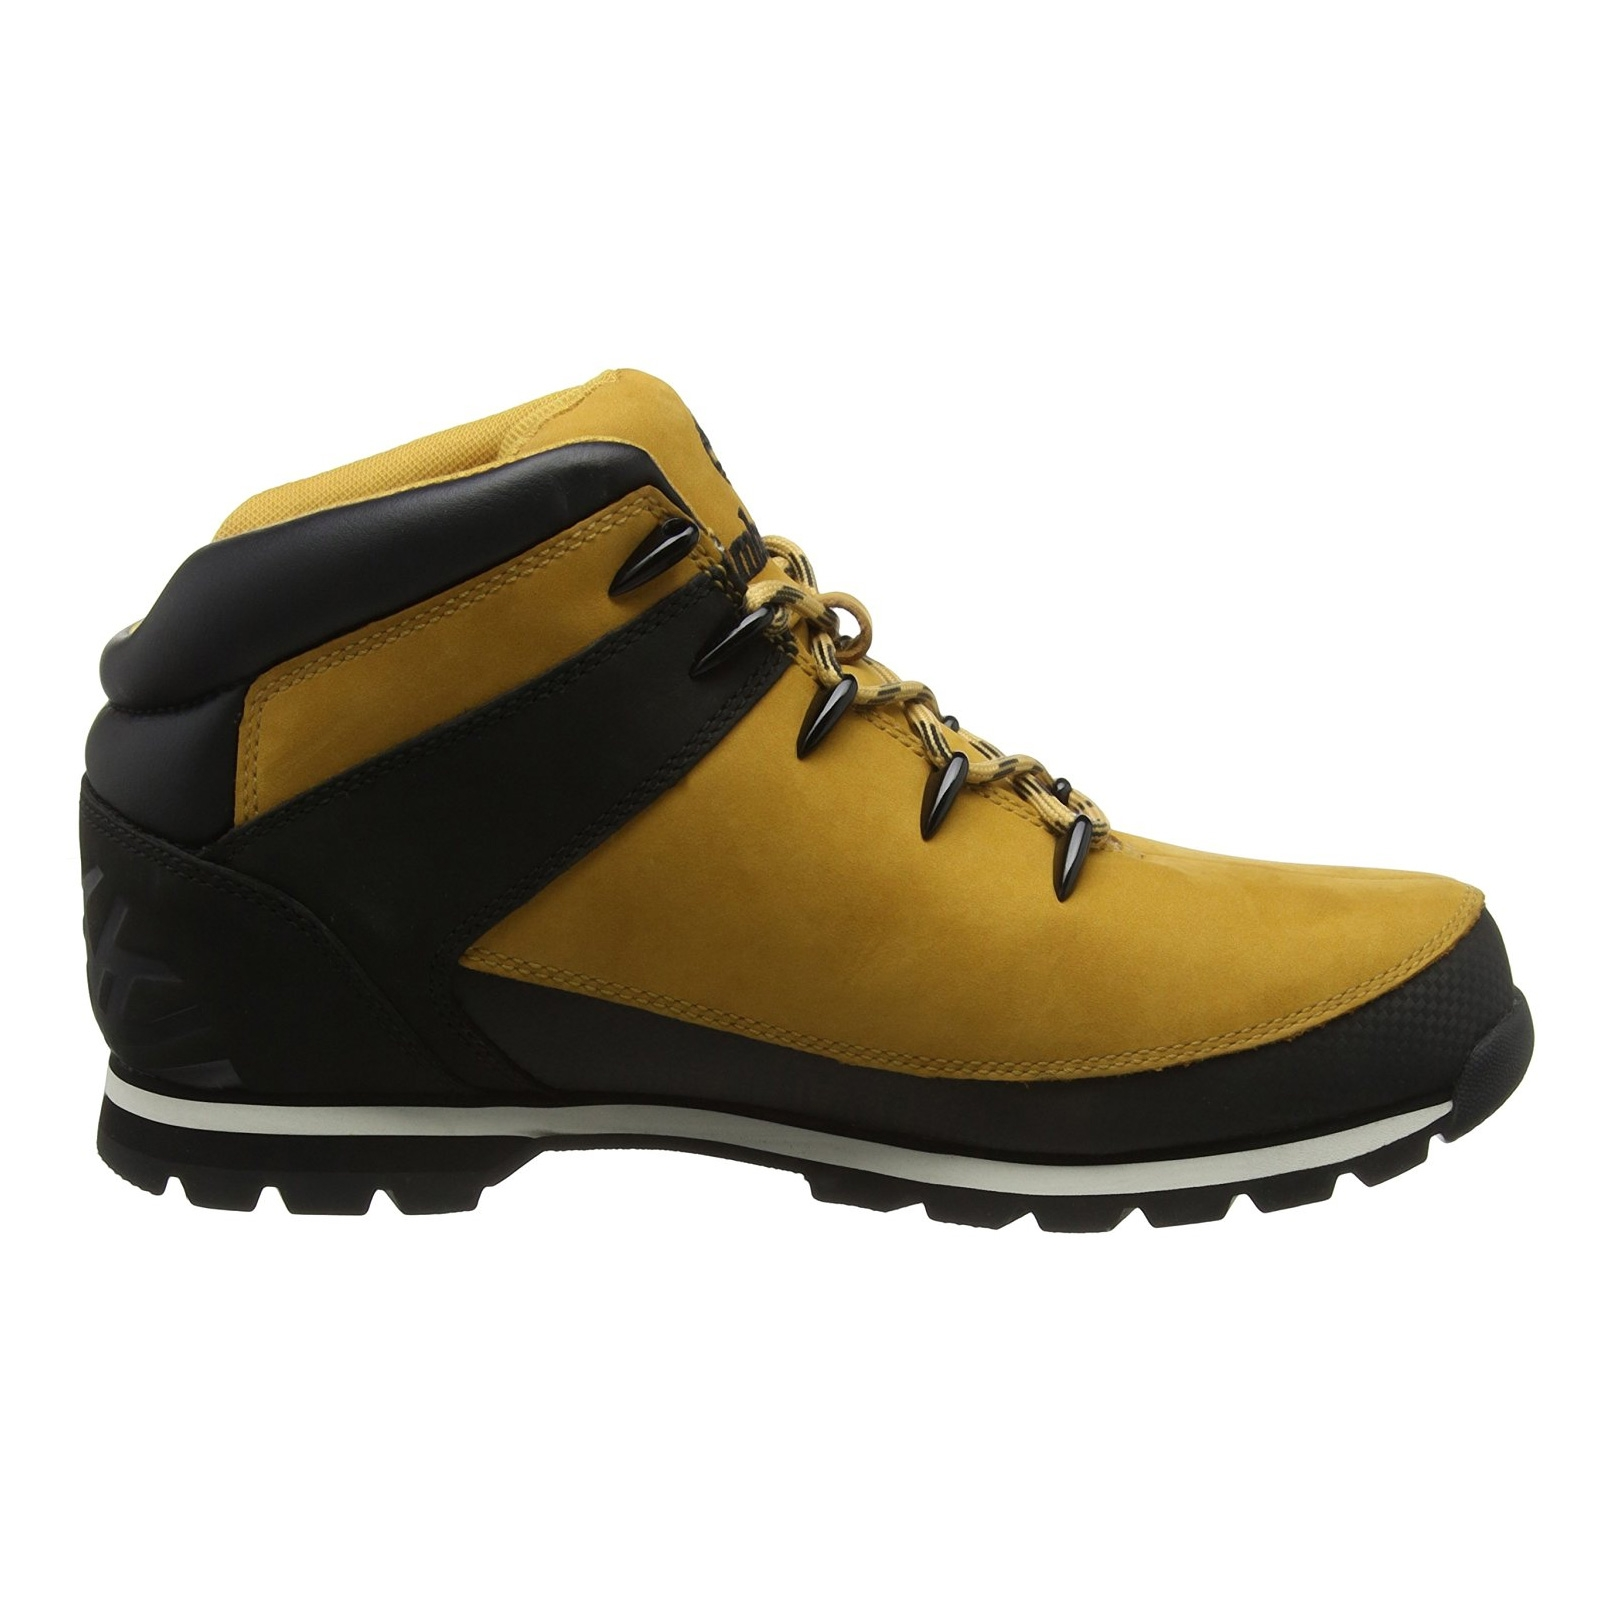 Image of Timberland Euro Sprint Hiker Walking Boots (Men's) - Wheat Nubuck  with Silizium